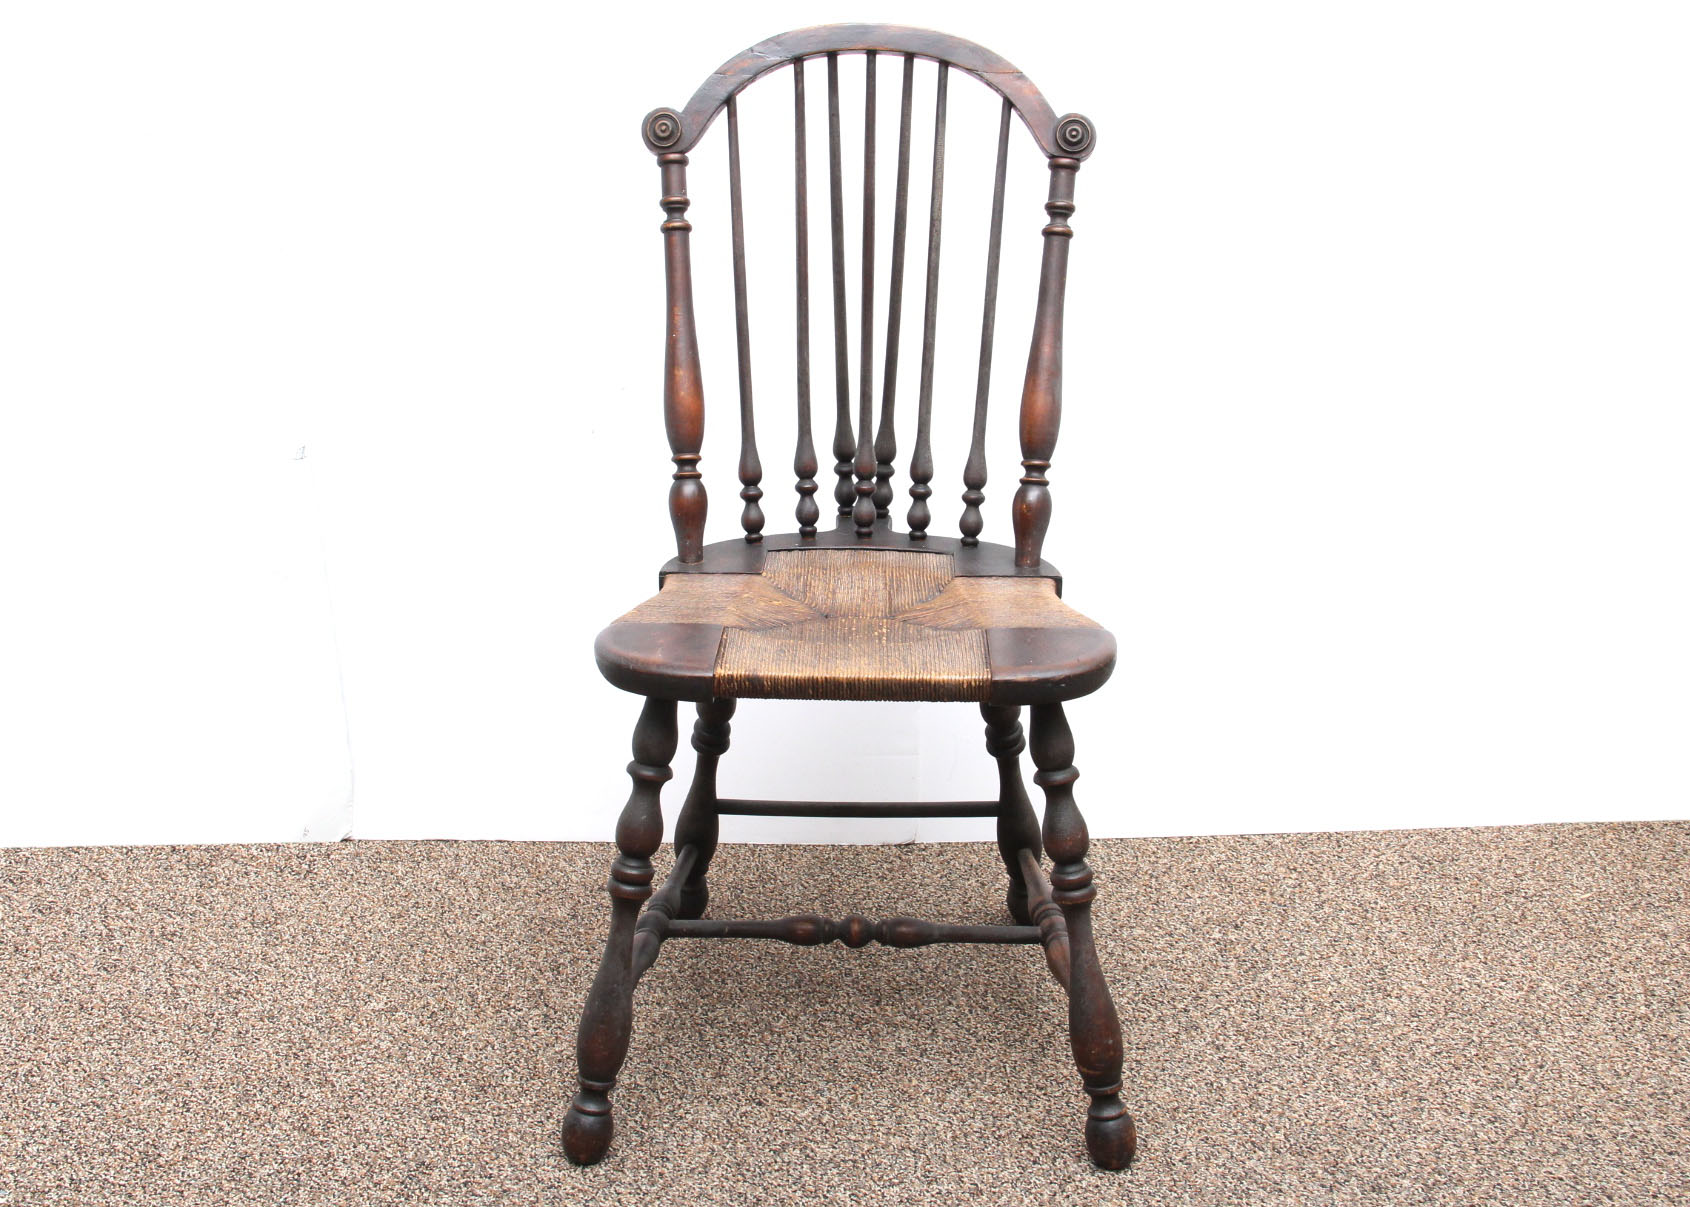 sikes chair company posture promoting antique spindle back ebth